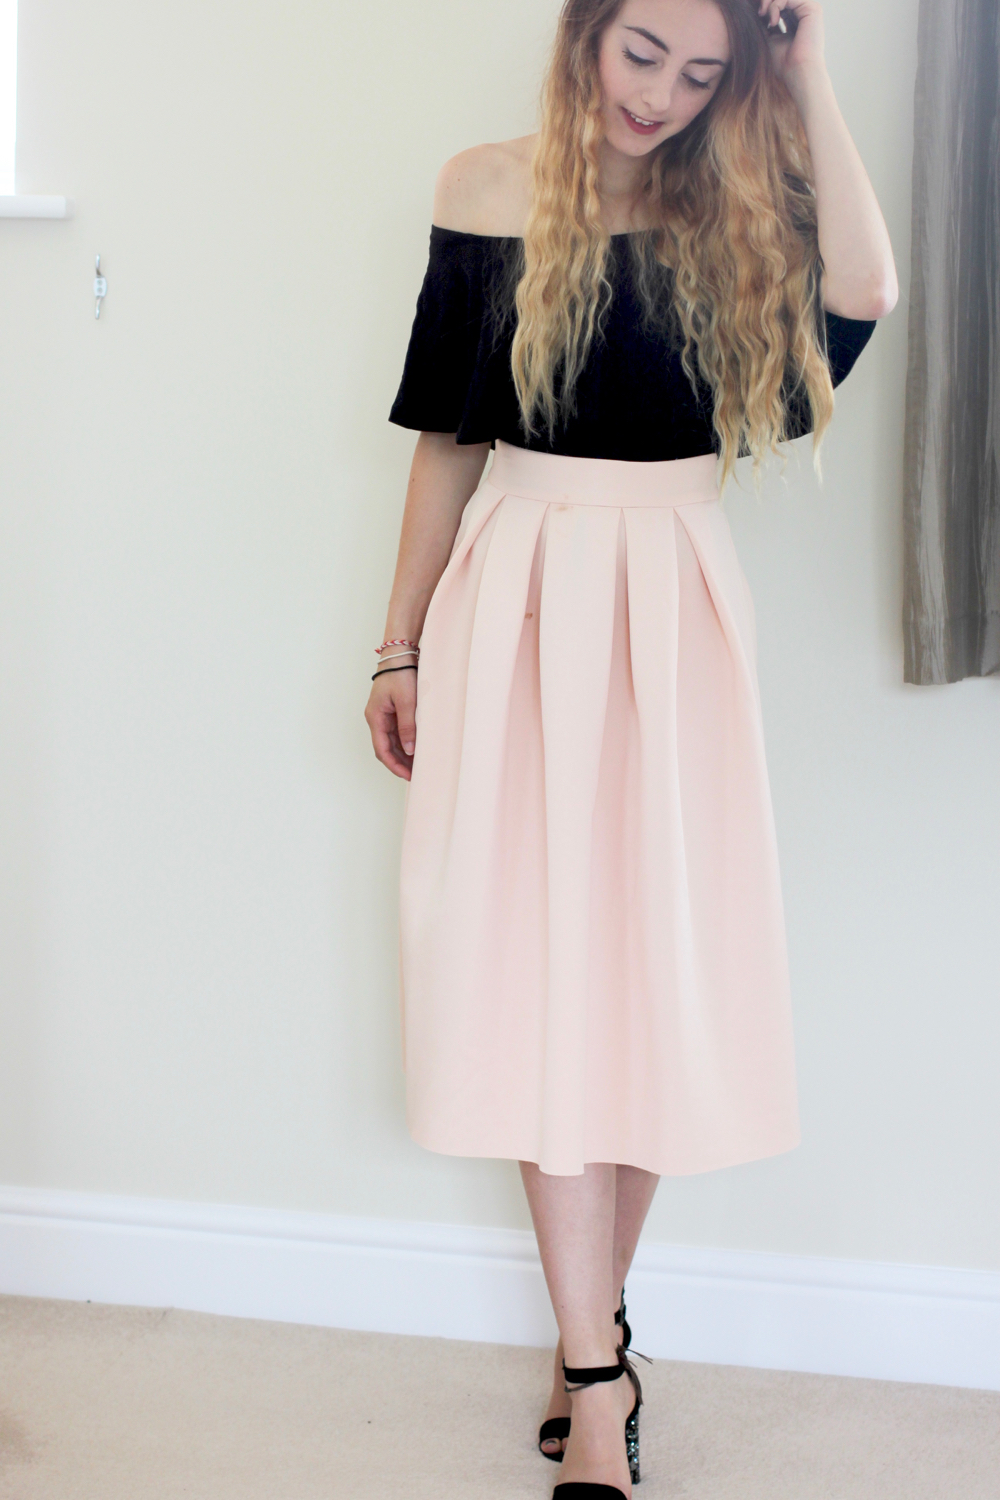 Summer Formal Outfits | www.hannahemilylane.com